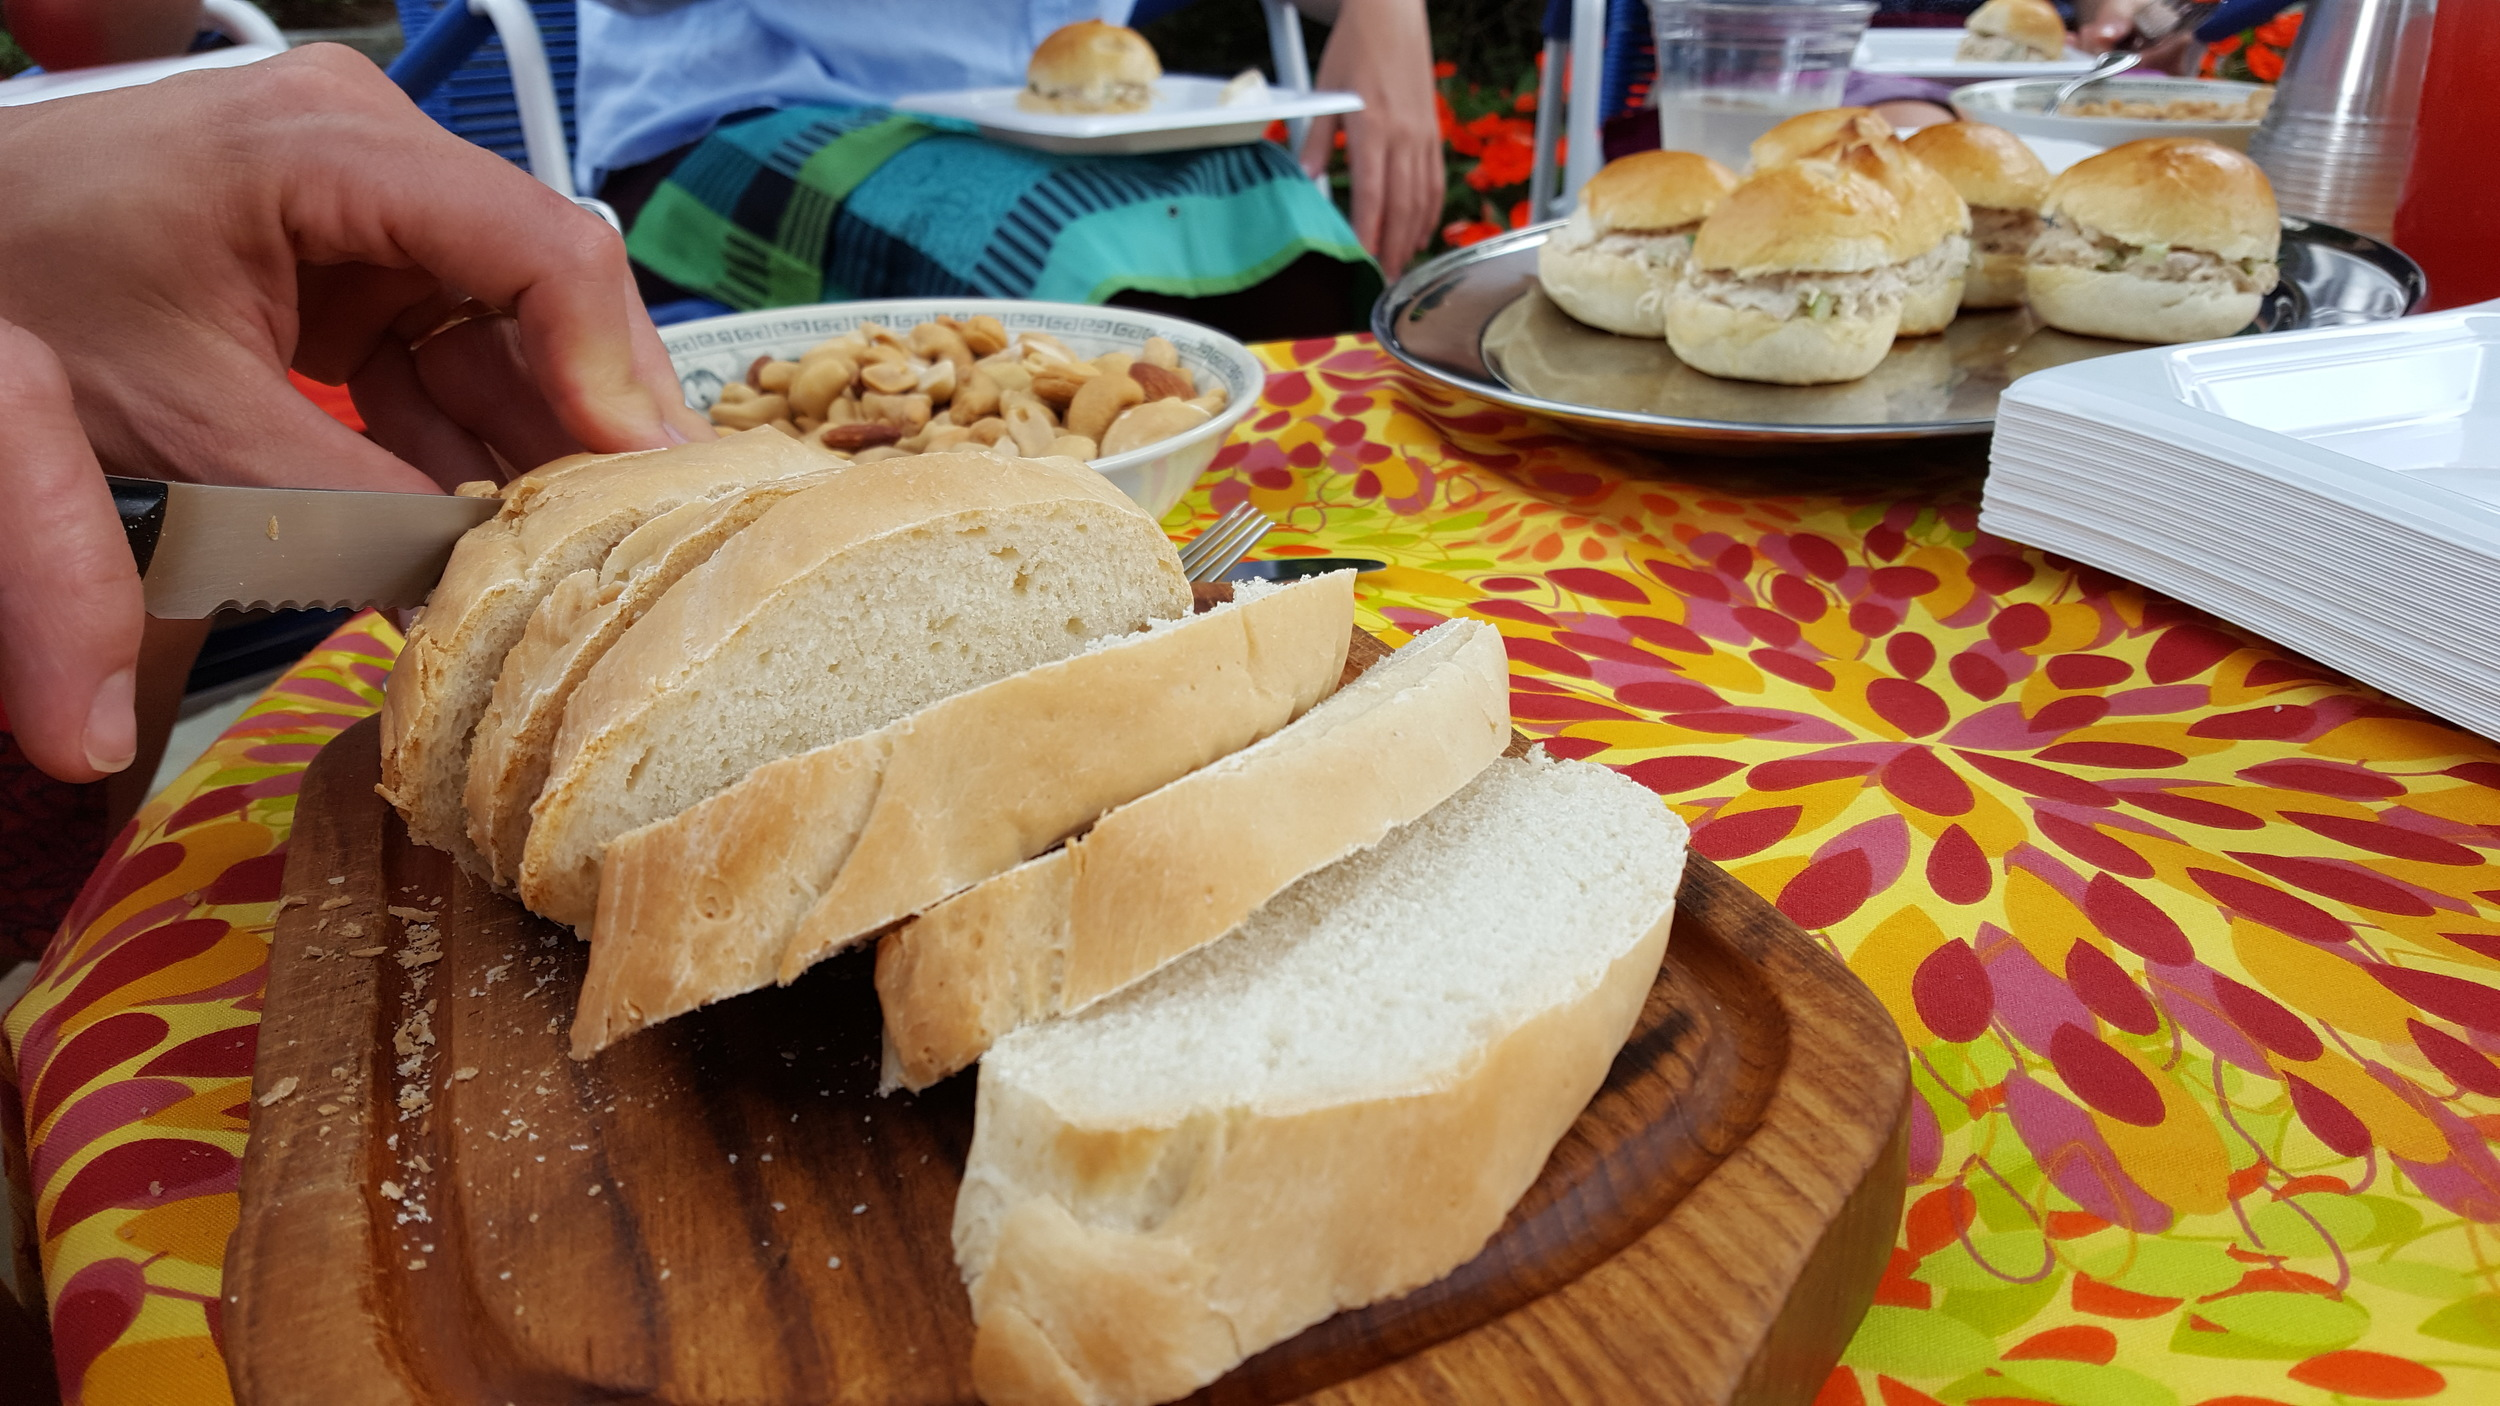 Homemade bread at the picnic